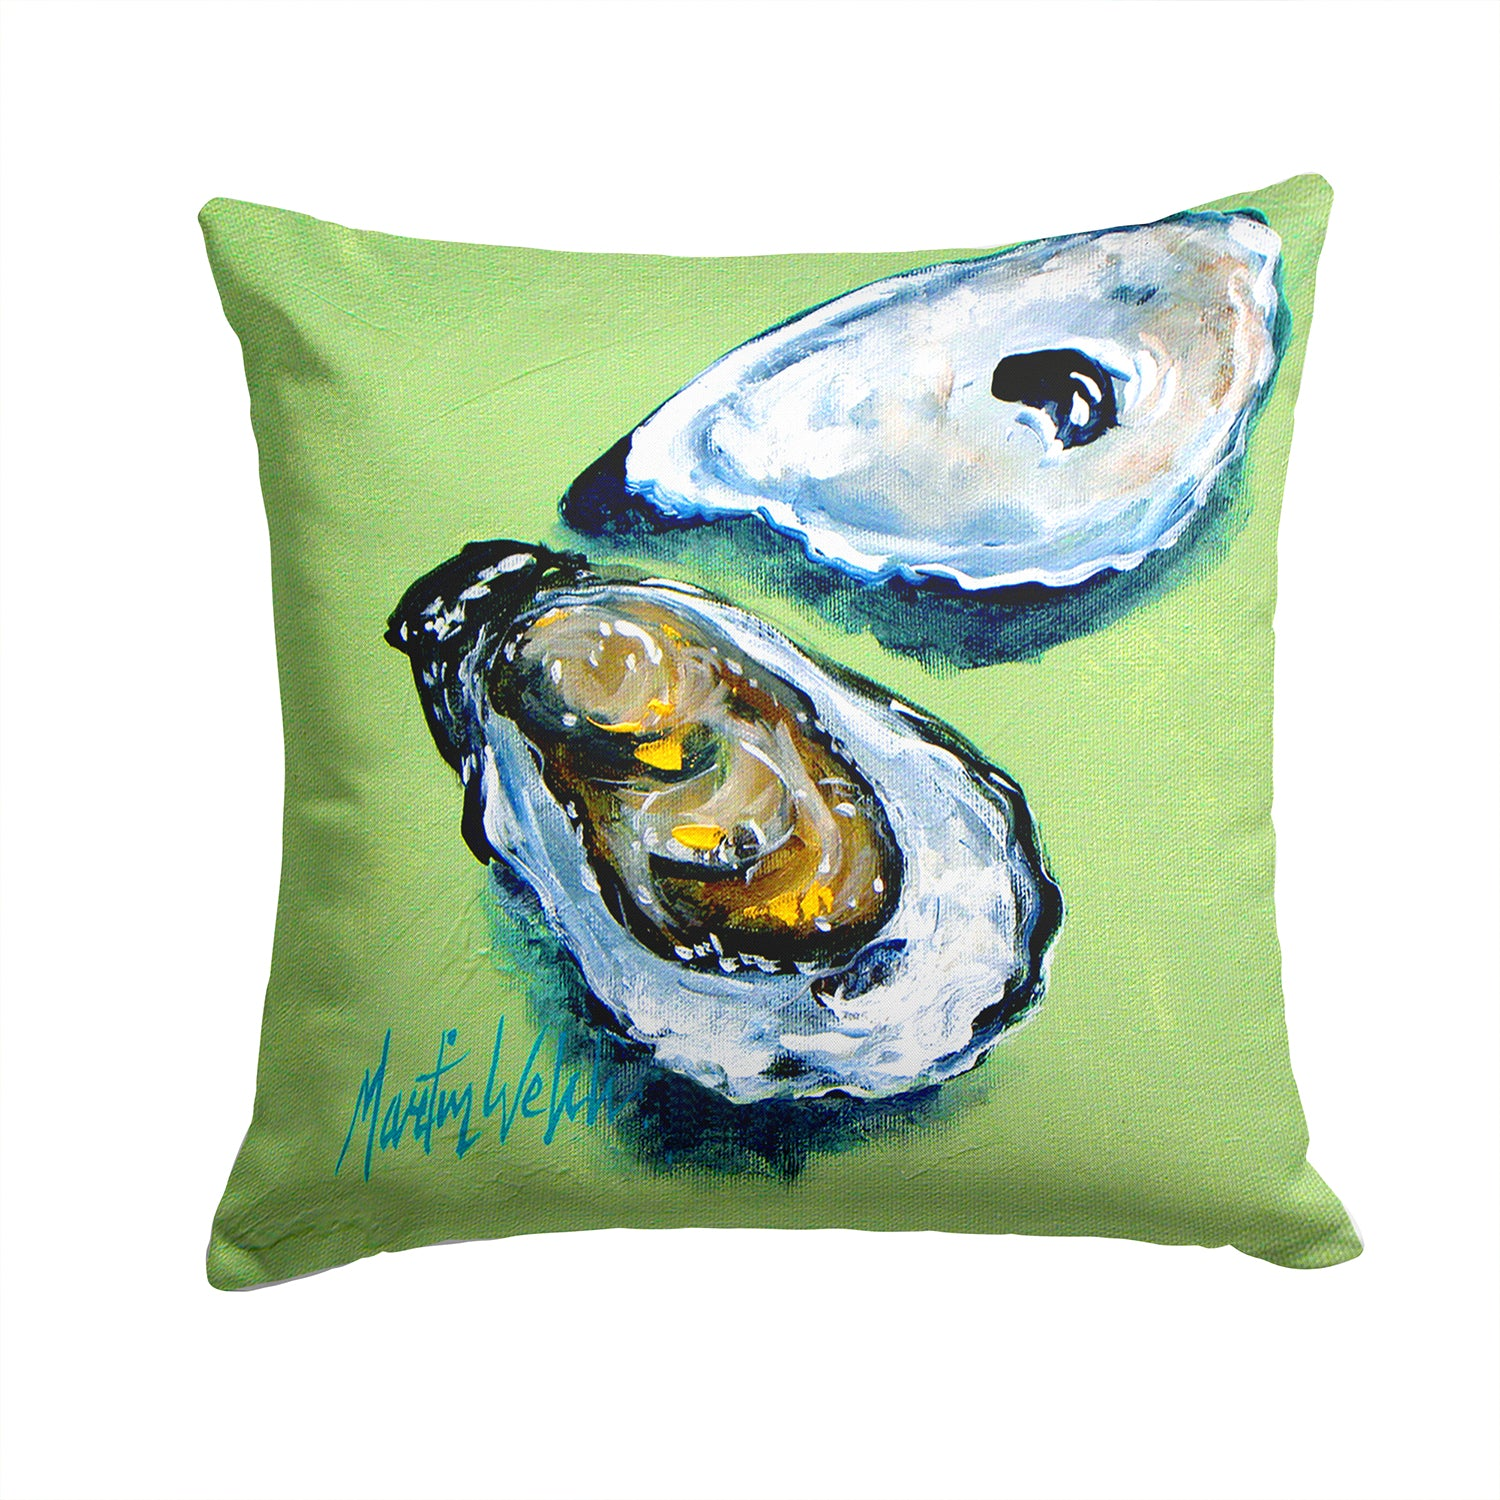 Two Shells Oyster Fabric Decorative Pillow MW1361PW1414 by Caroline's Treasures